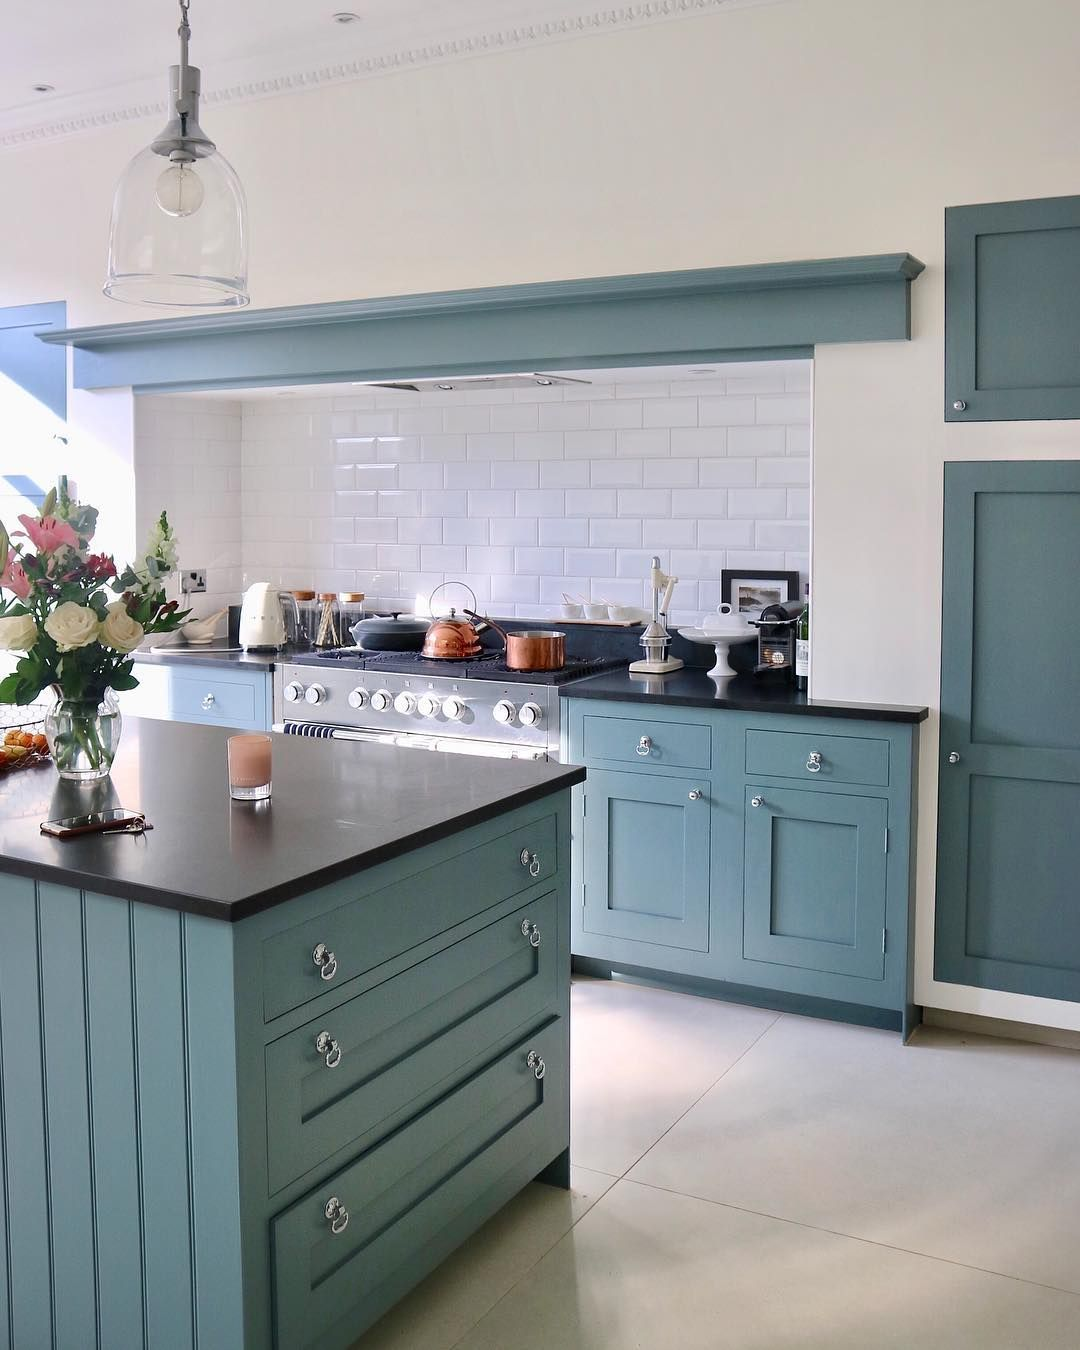 Our kitchen's repaint is nearly done. ✅. One job ticked off the long list. From pale cream to a blue grey called De Nimes, one of Farrow &… #bluegreykitchens